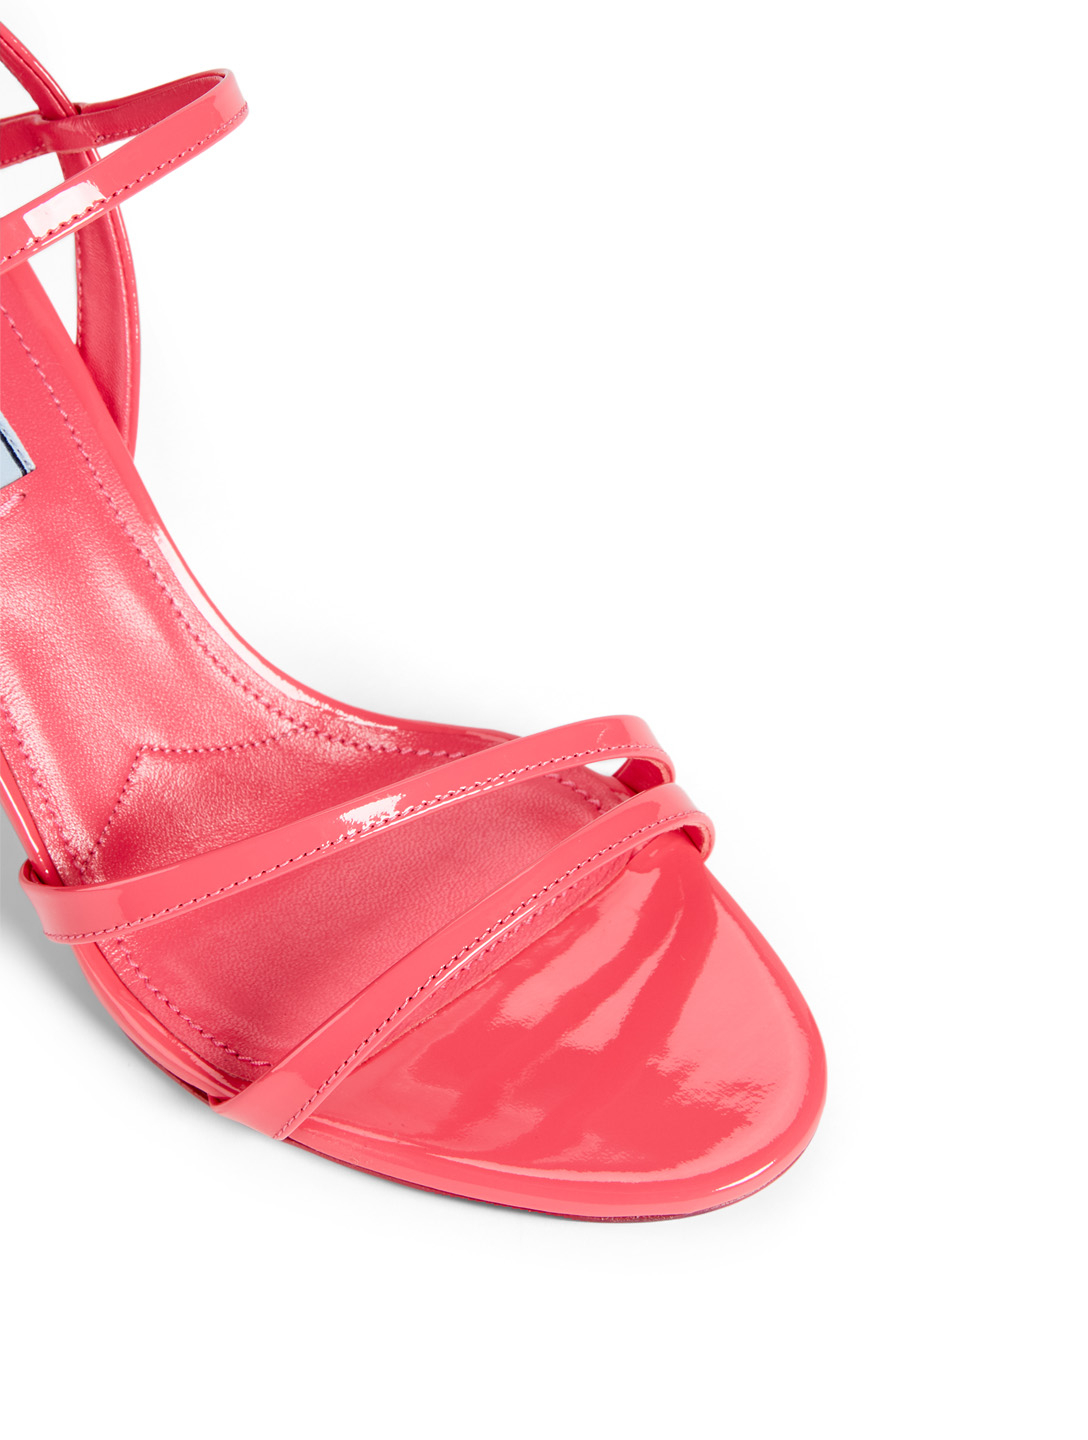 PRADA Bare Patent Leather Heeled Sandals Women's Pink